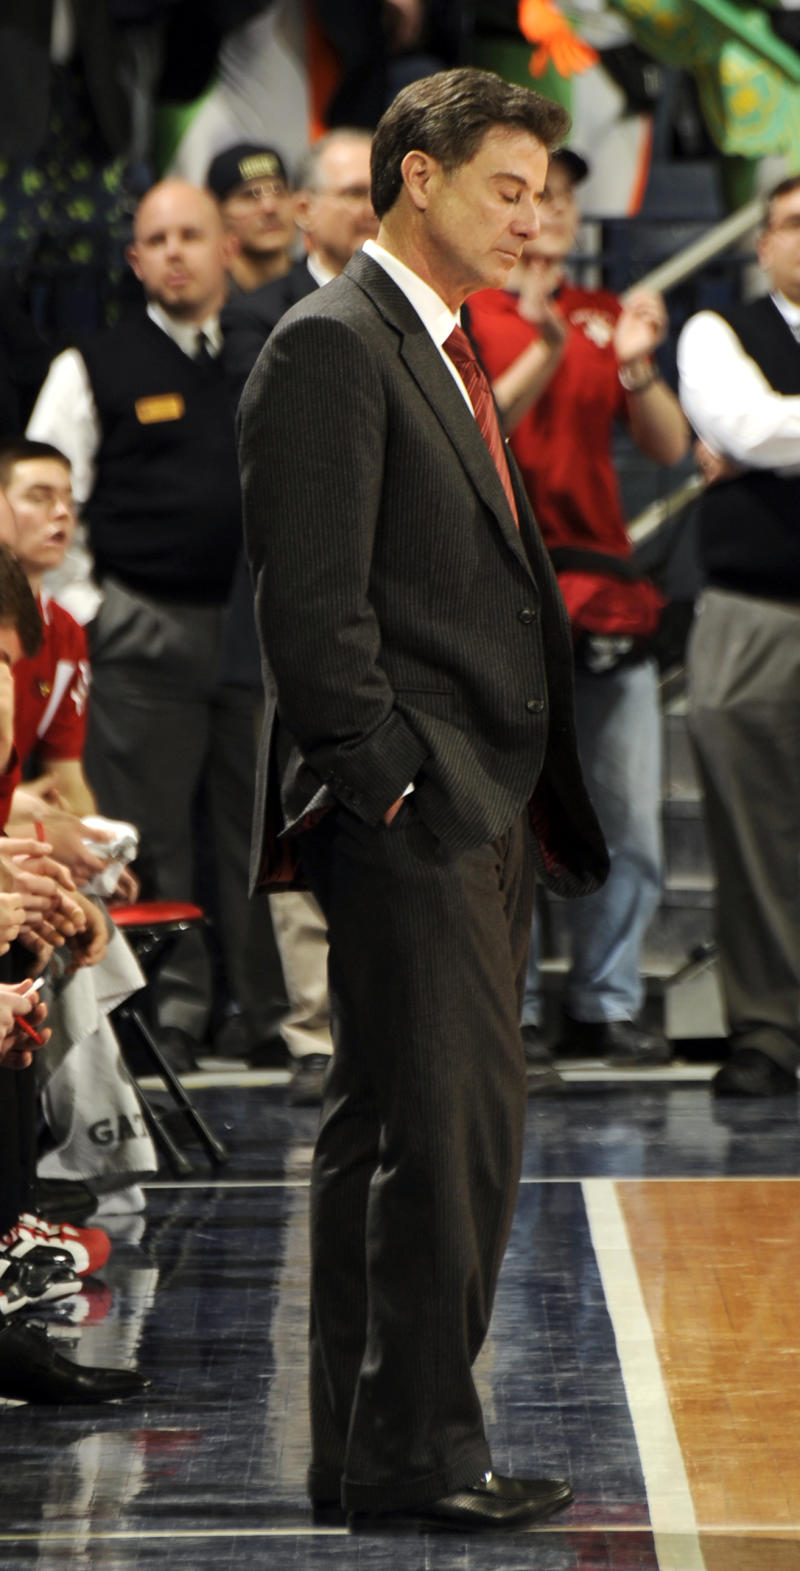 Louisville coach Rick Pitino reacts during overtime in an NCAA college basketball game with Notre Dame Wednesday, Feb. 9, 2011 in South Bend, Ind. Louisville loss 89-79.  (AP Photo/Joe Raymond)